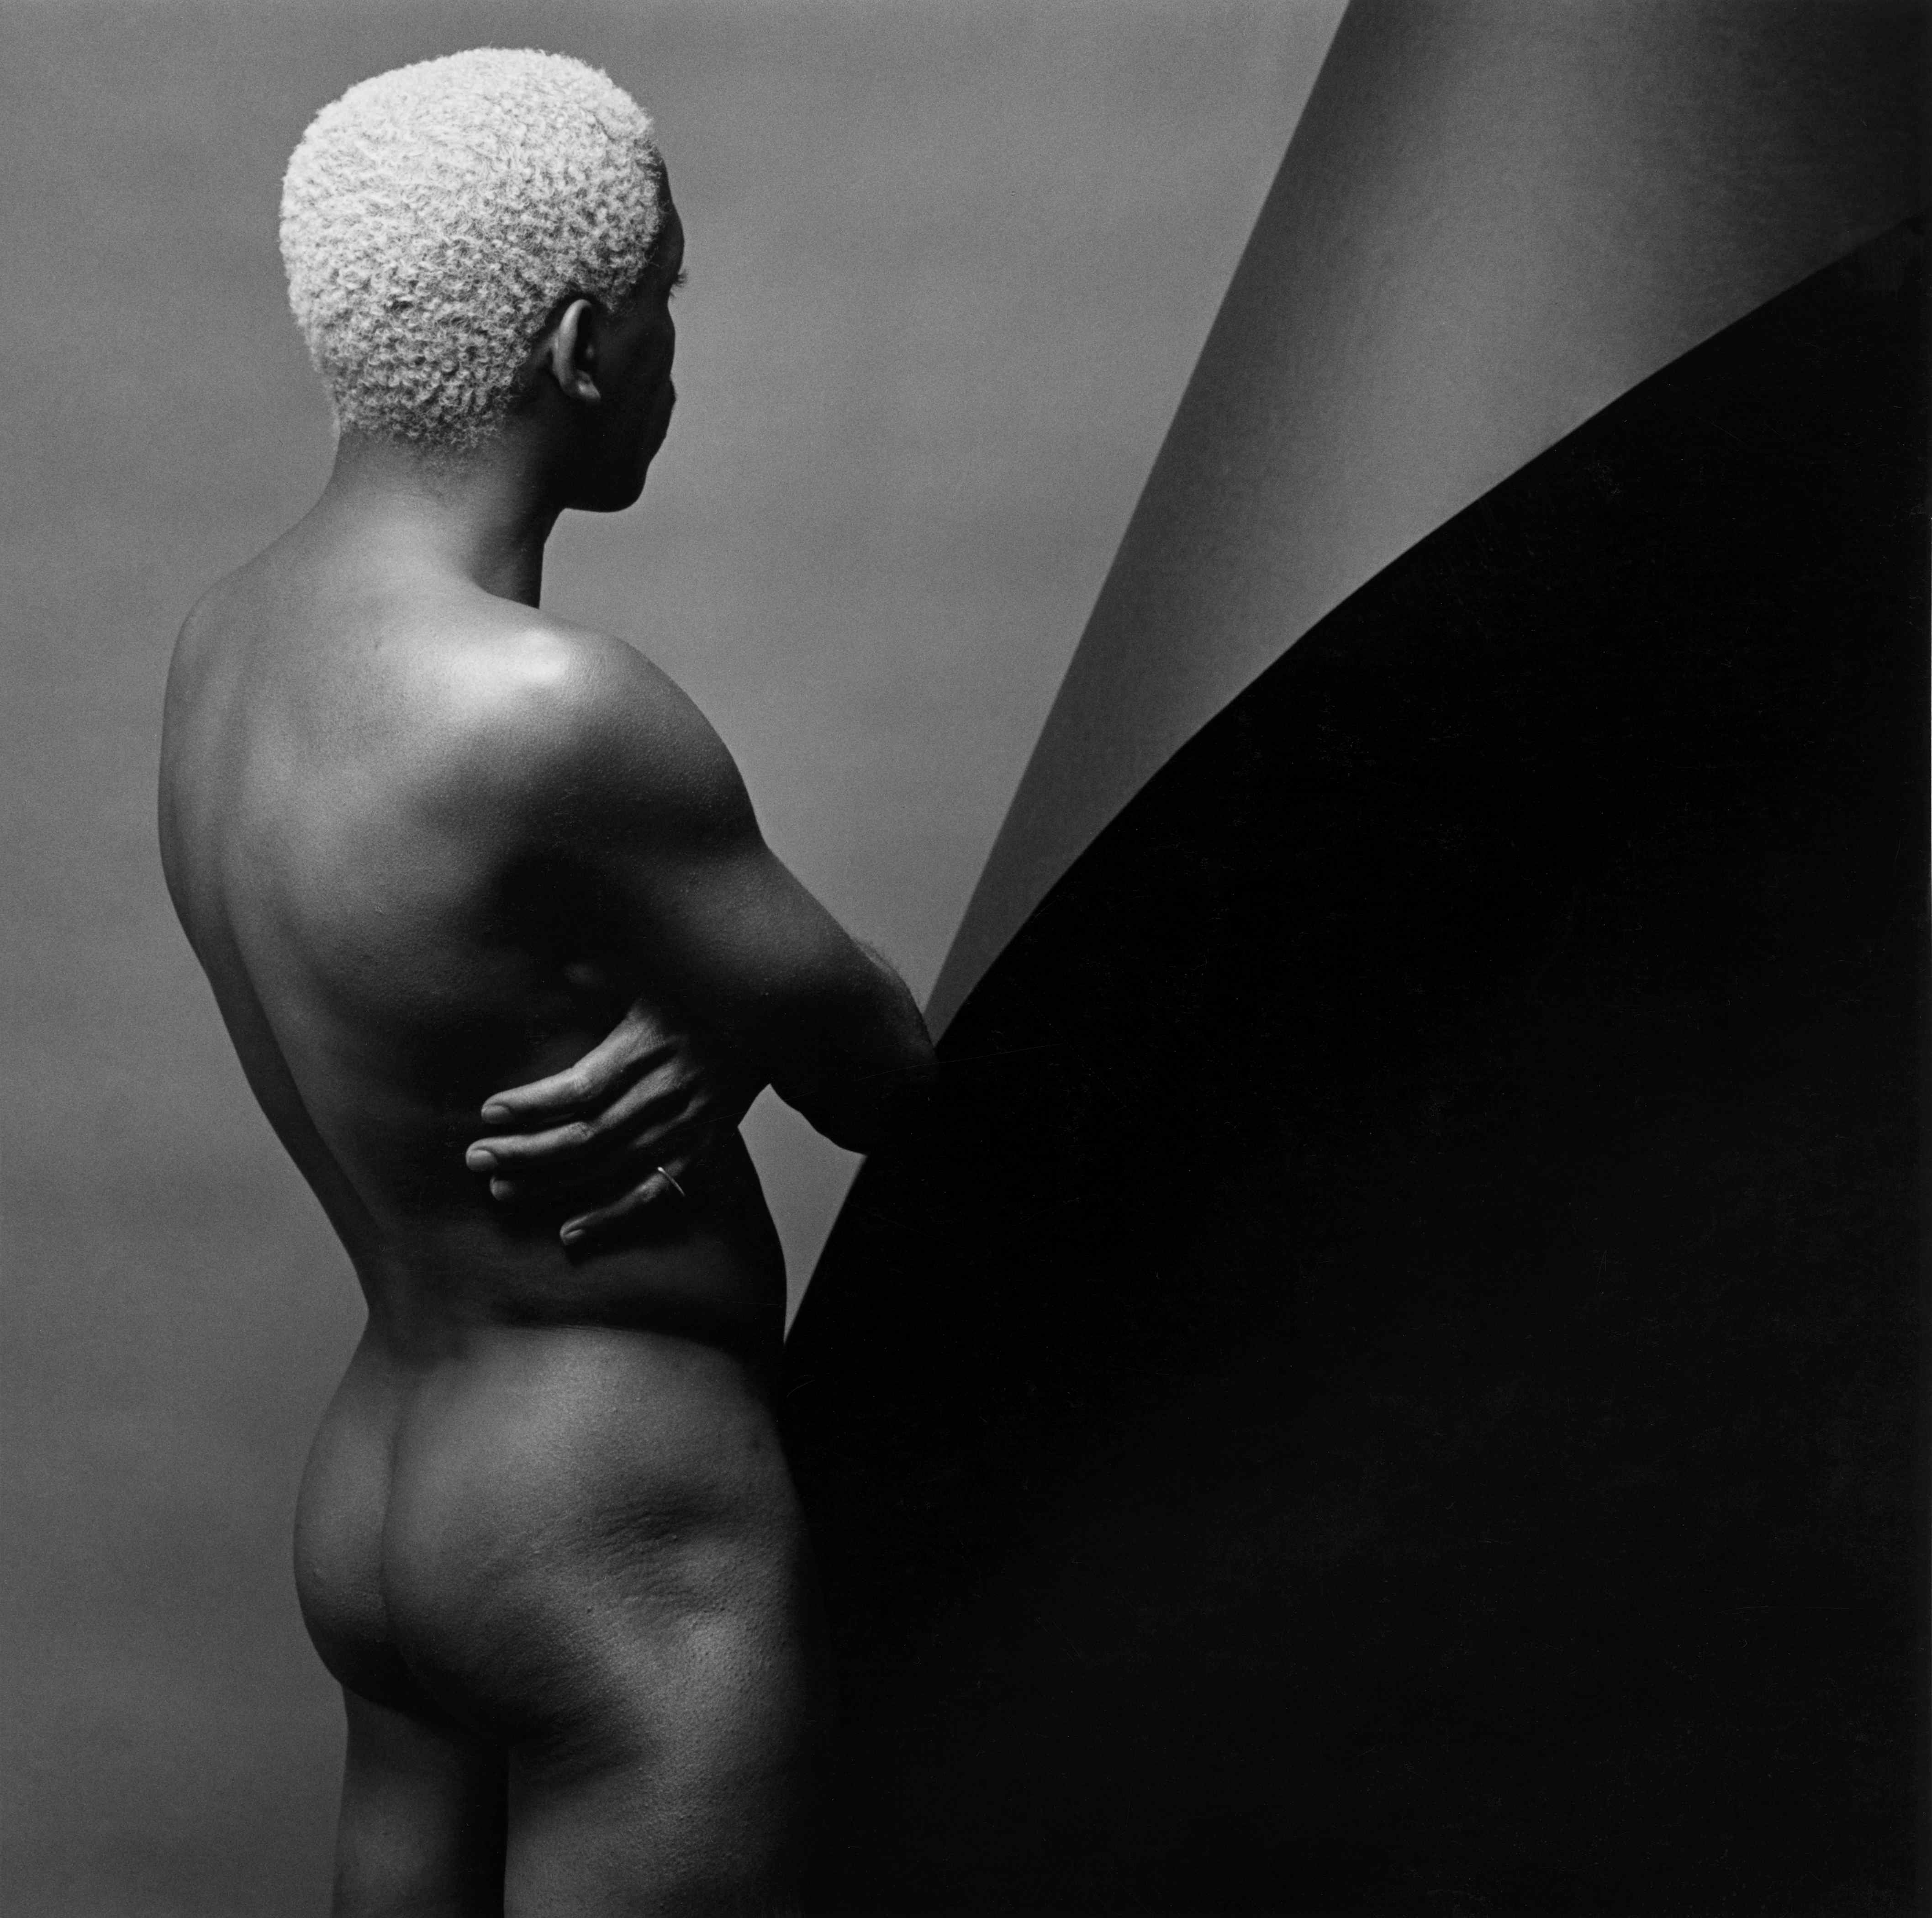 LeeLeigh_1980_Robert Mapplethorpe Foundation.jpg